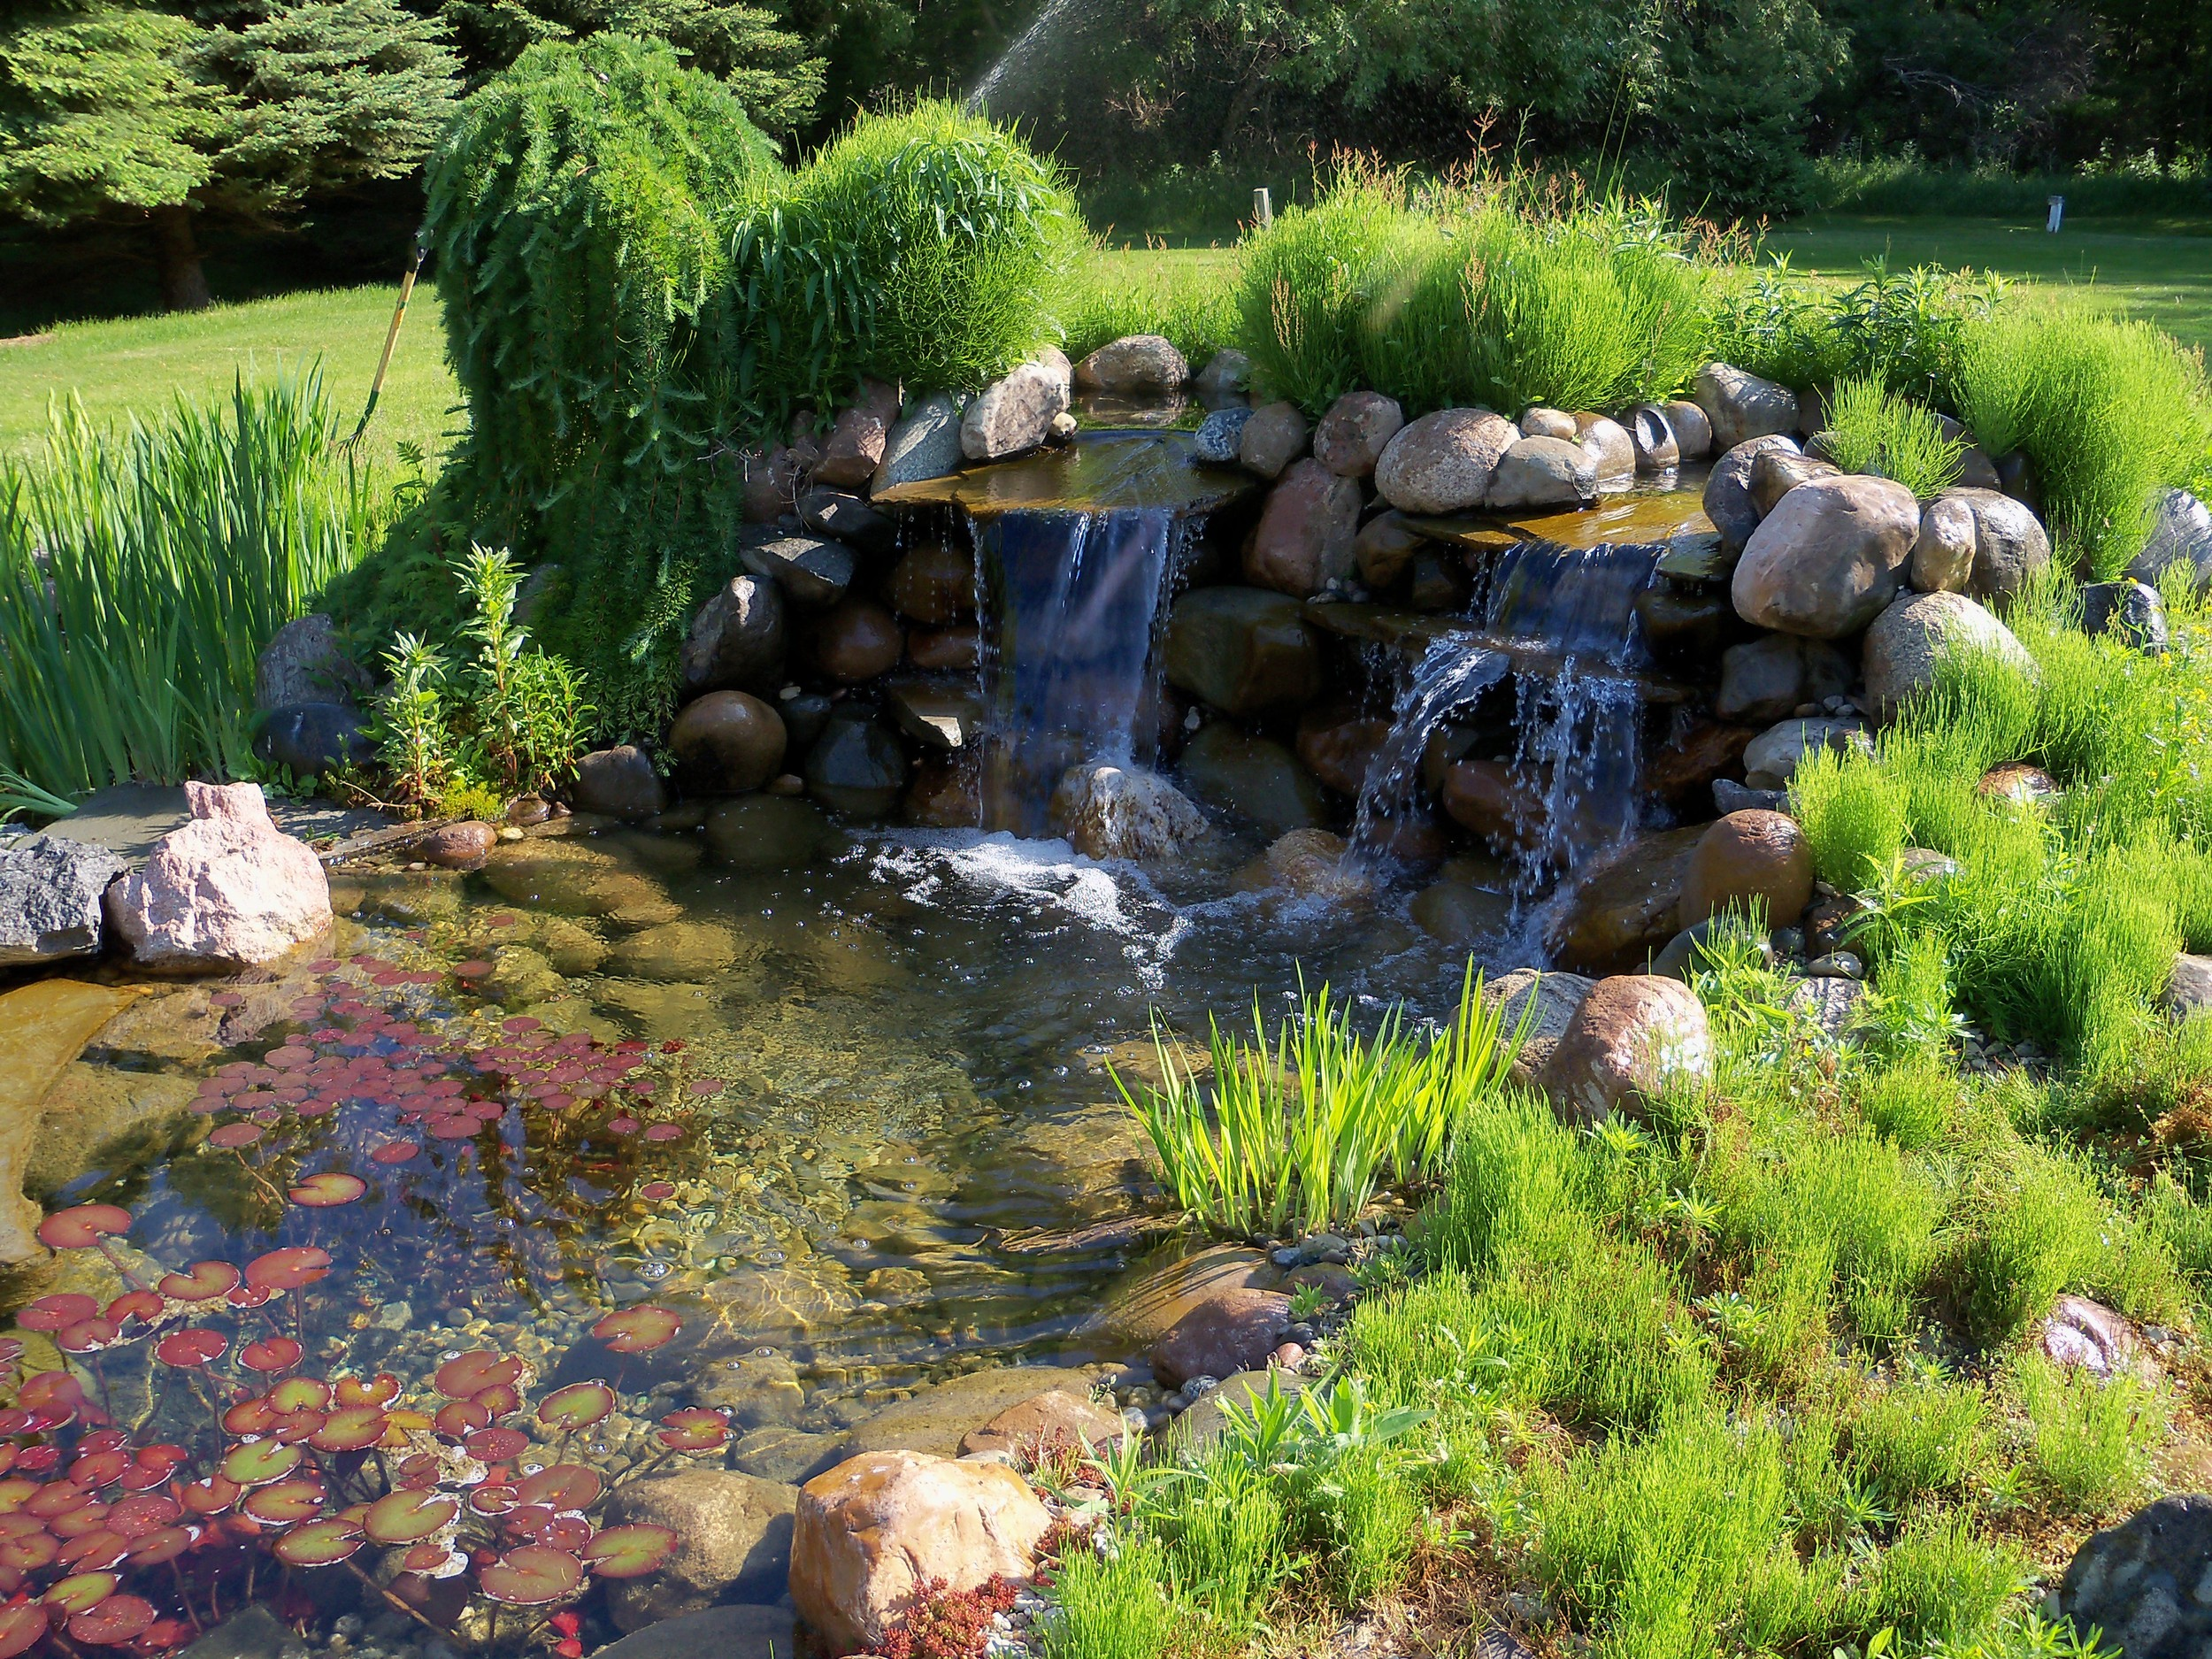 A dual waterfall creating additional ambiance for this pond